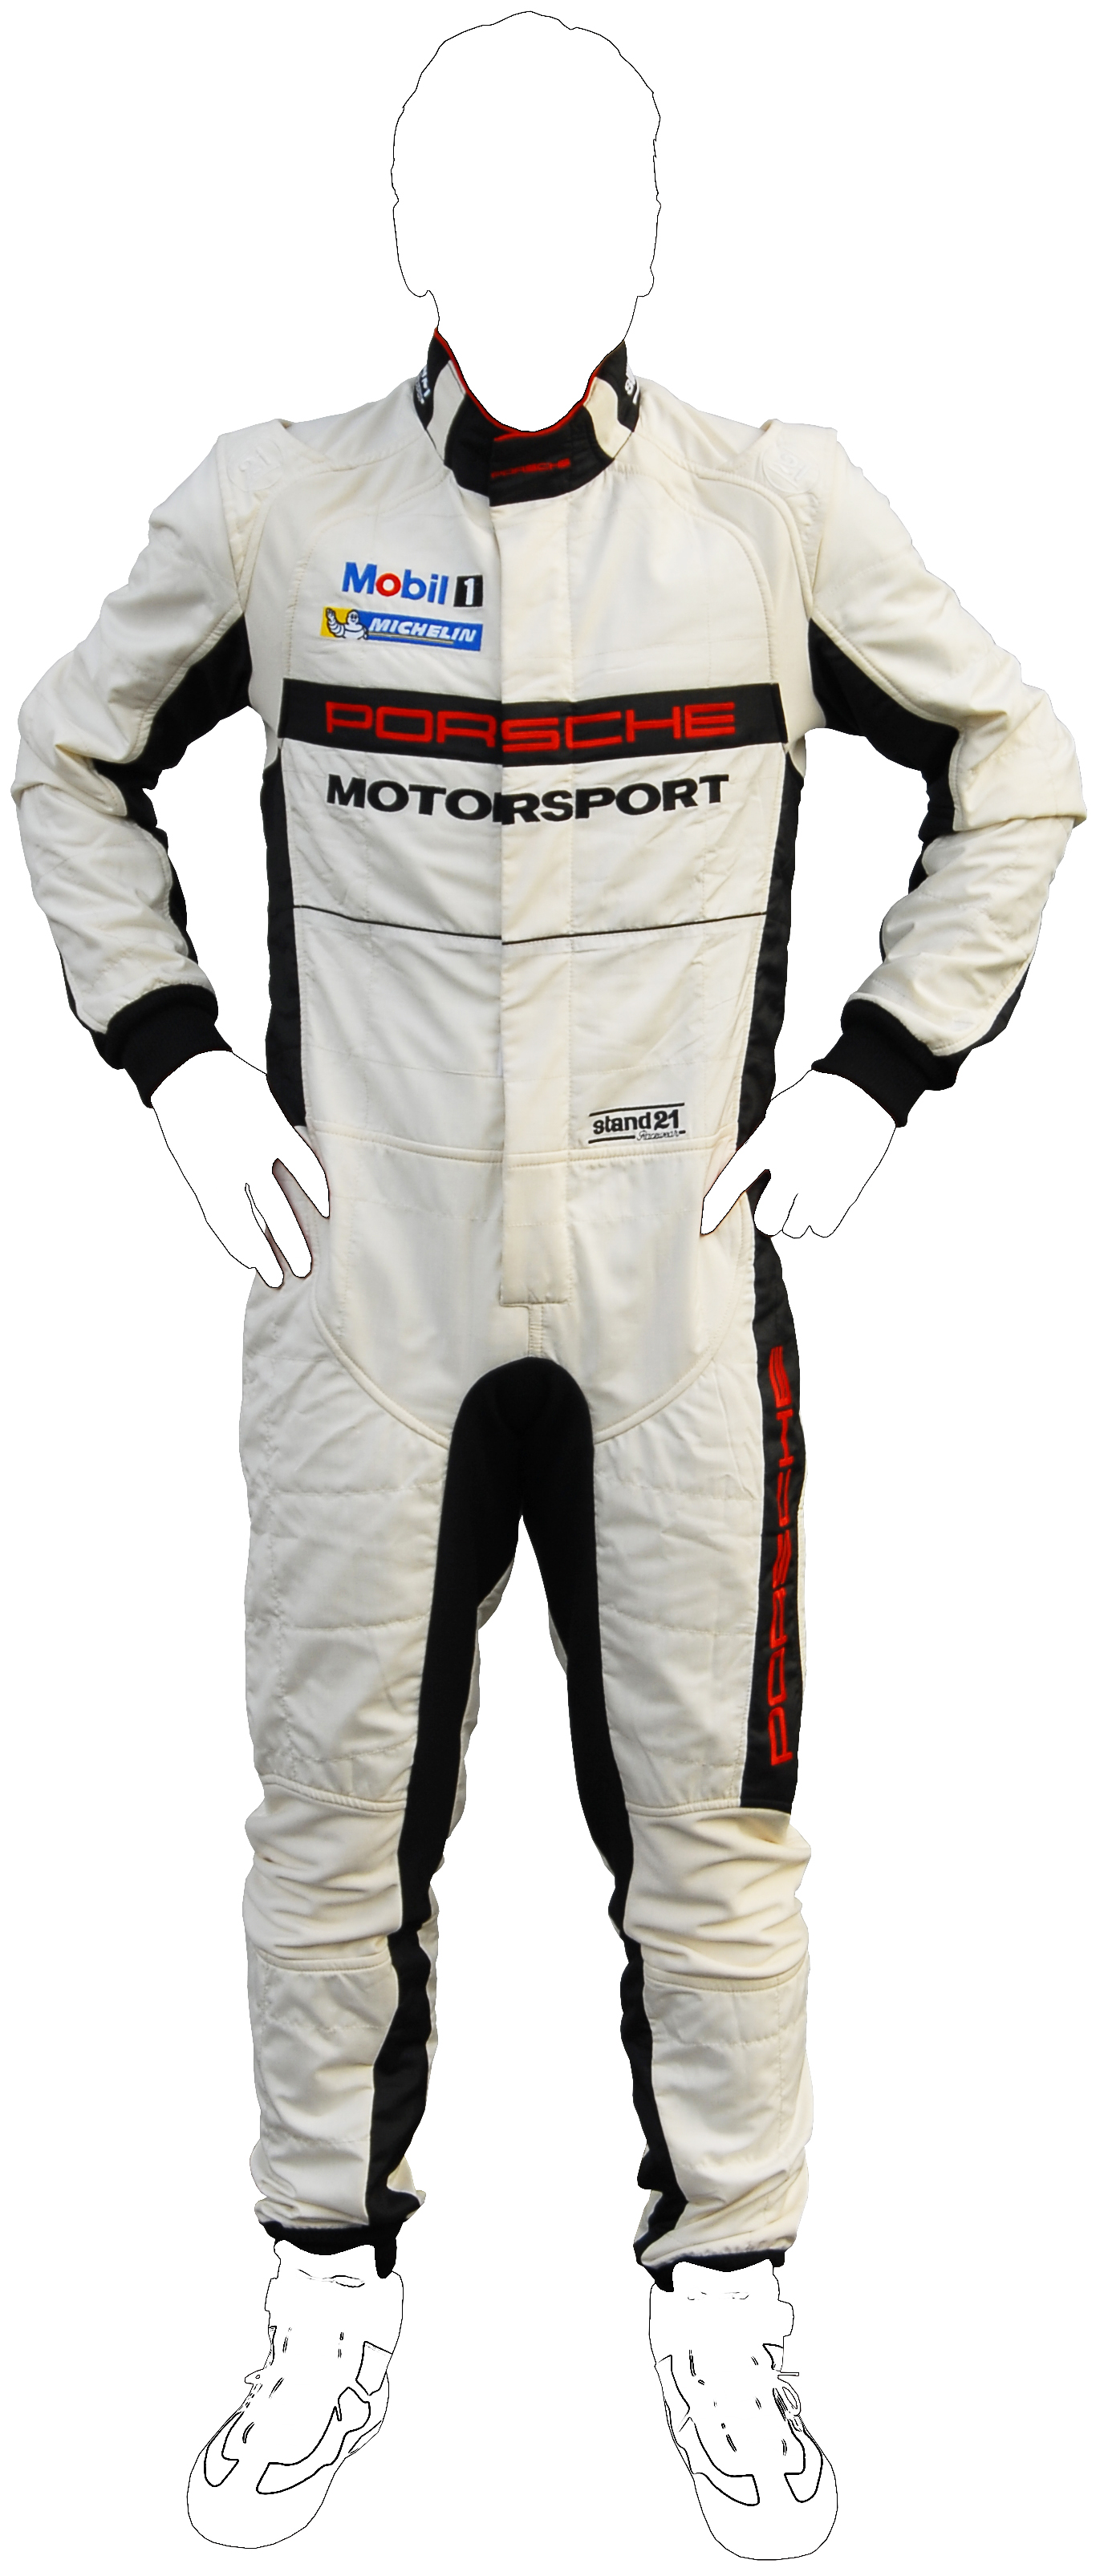 Stock Porsche Motorsport La Couture racing suit